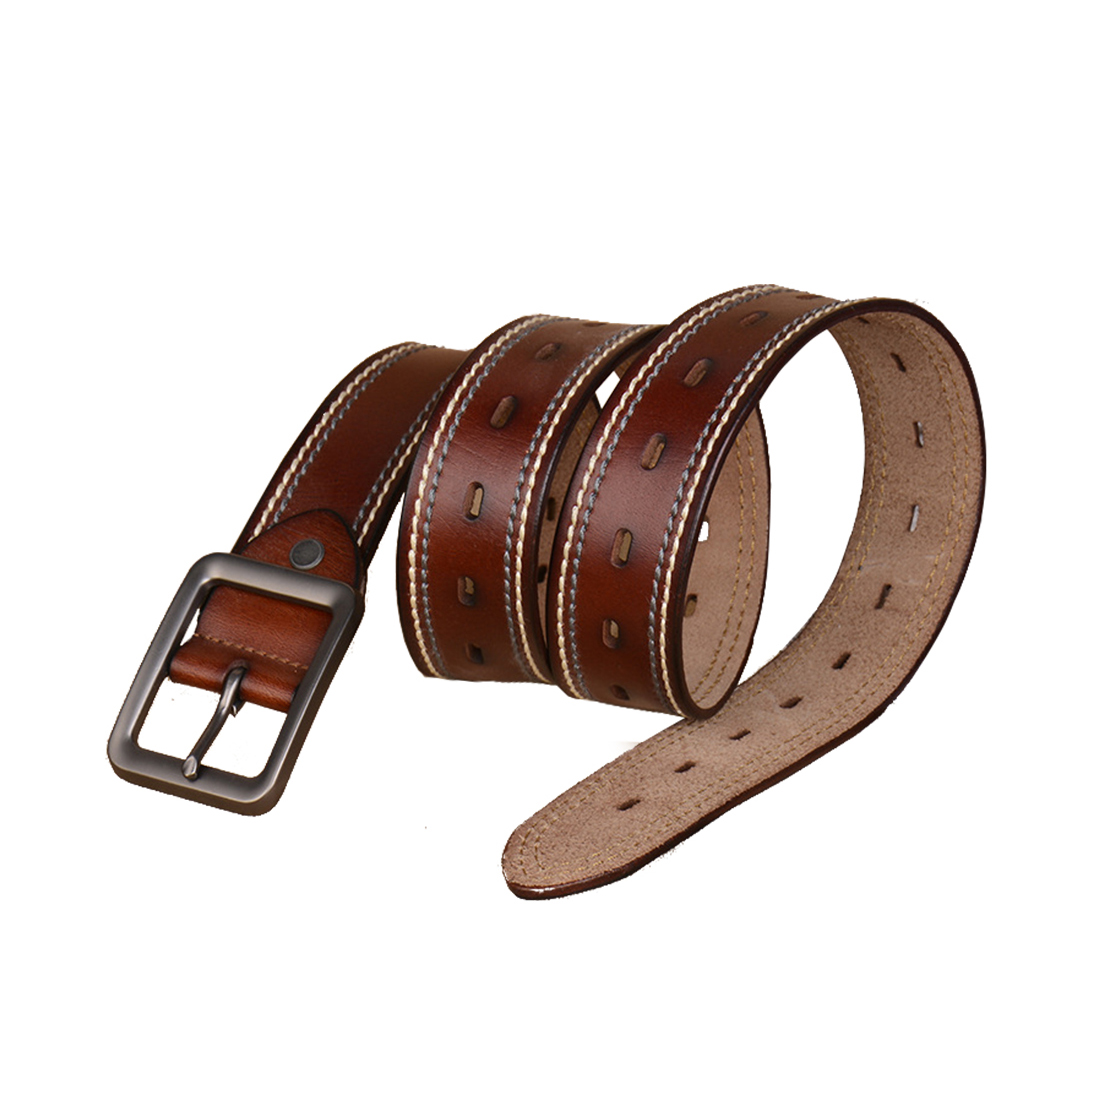 Men Fancy Stitching Single Pin Buckle Leather Belt 39mm Width 1 1/2 Brown 125cm